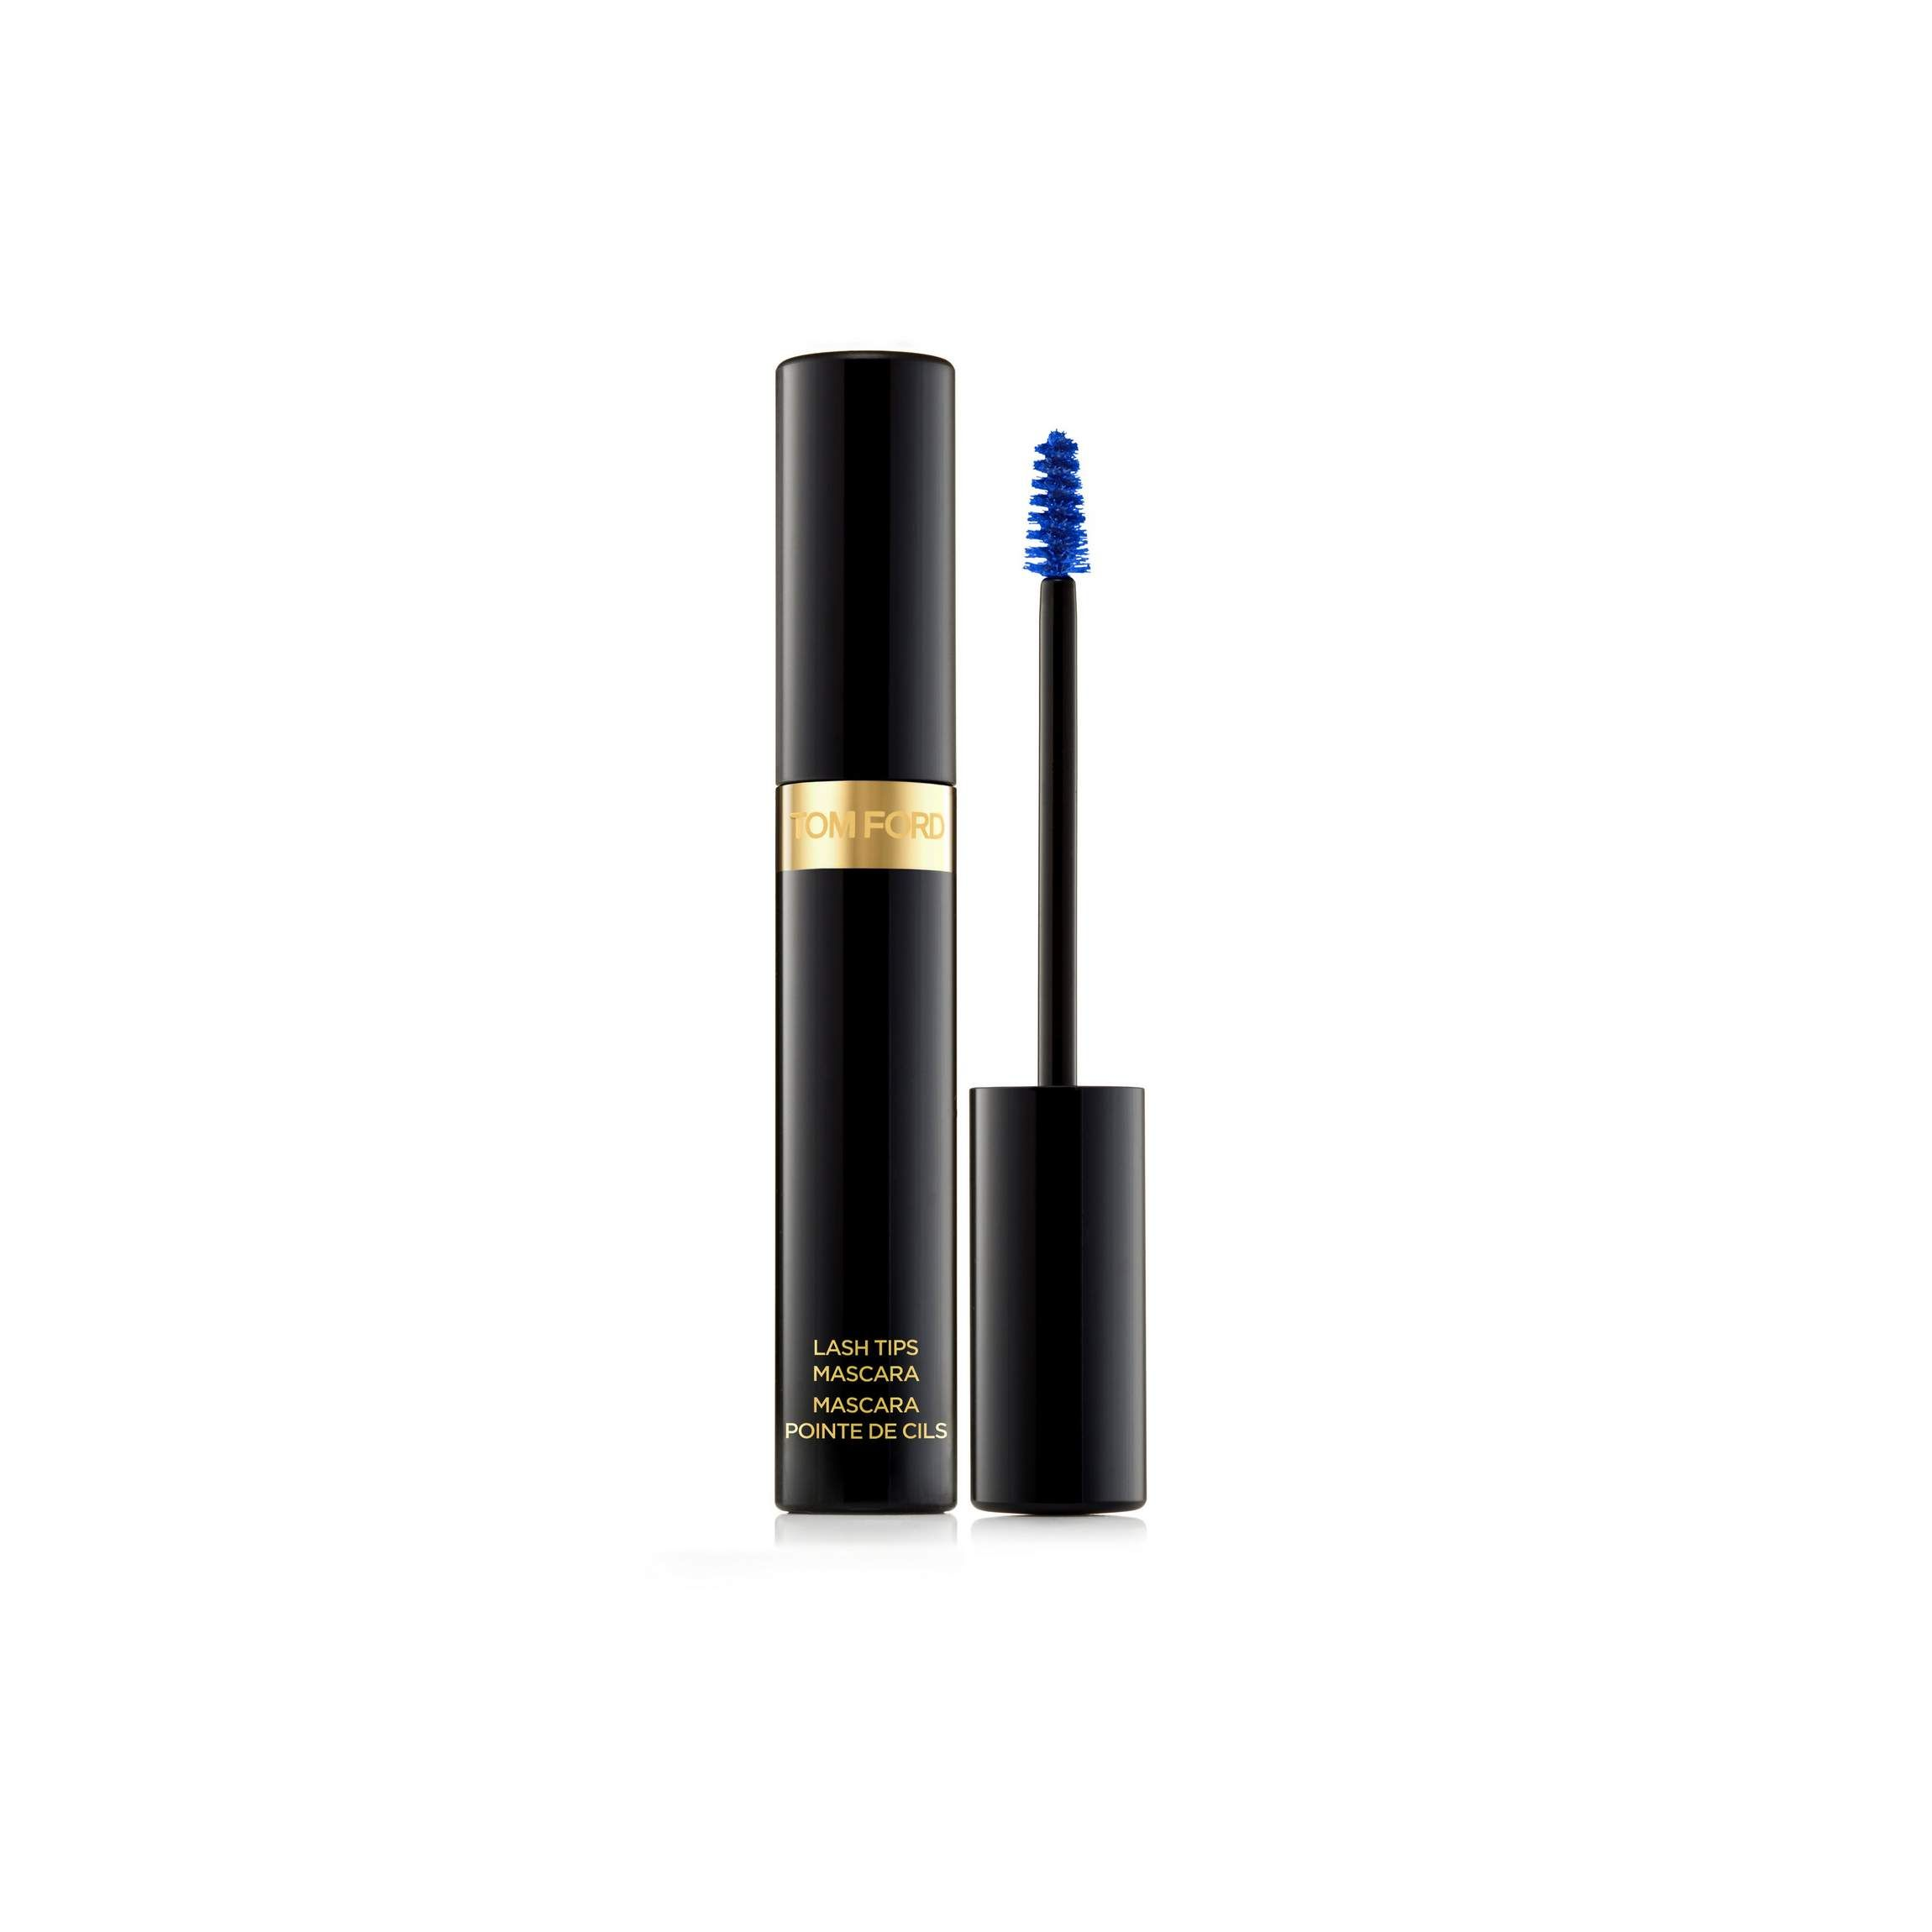 Tom Ford Lash Tips Mascara in Pure Cobalt